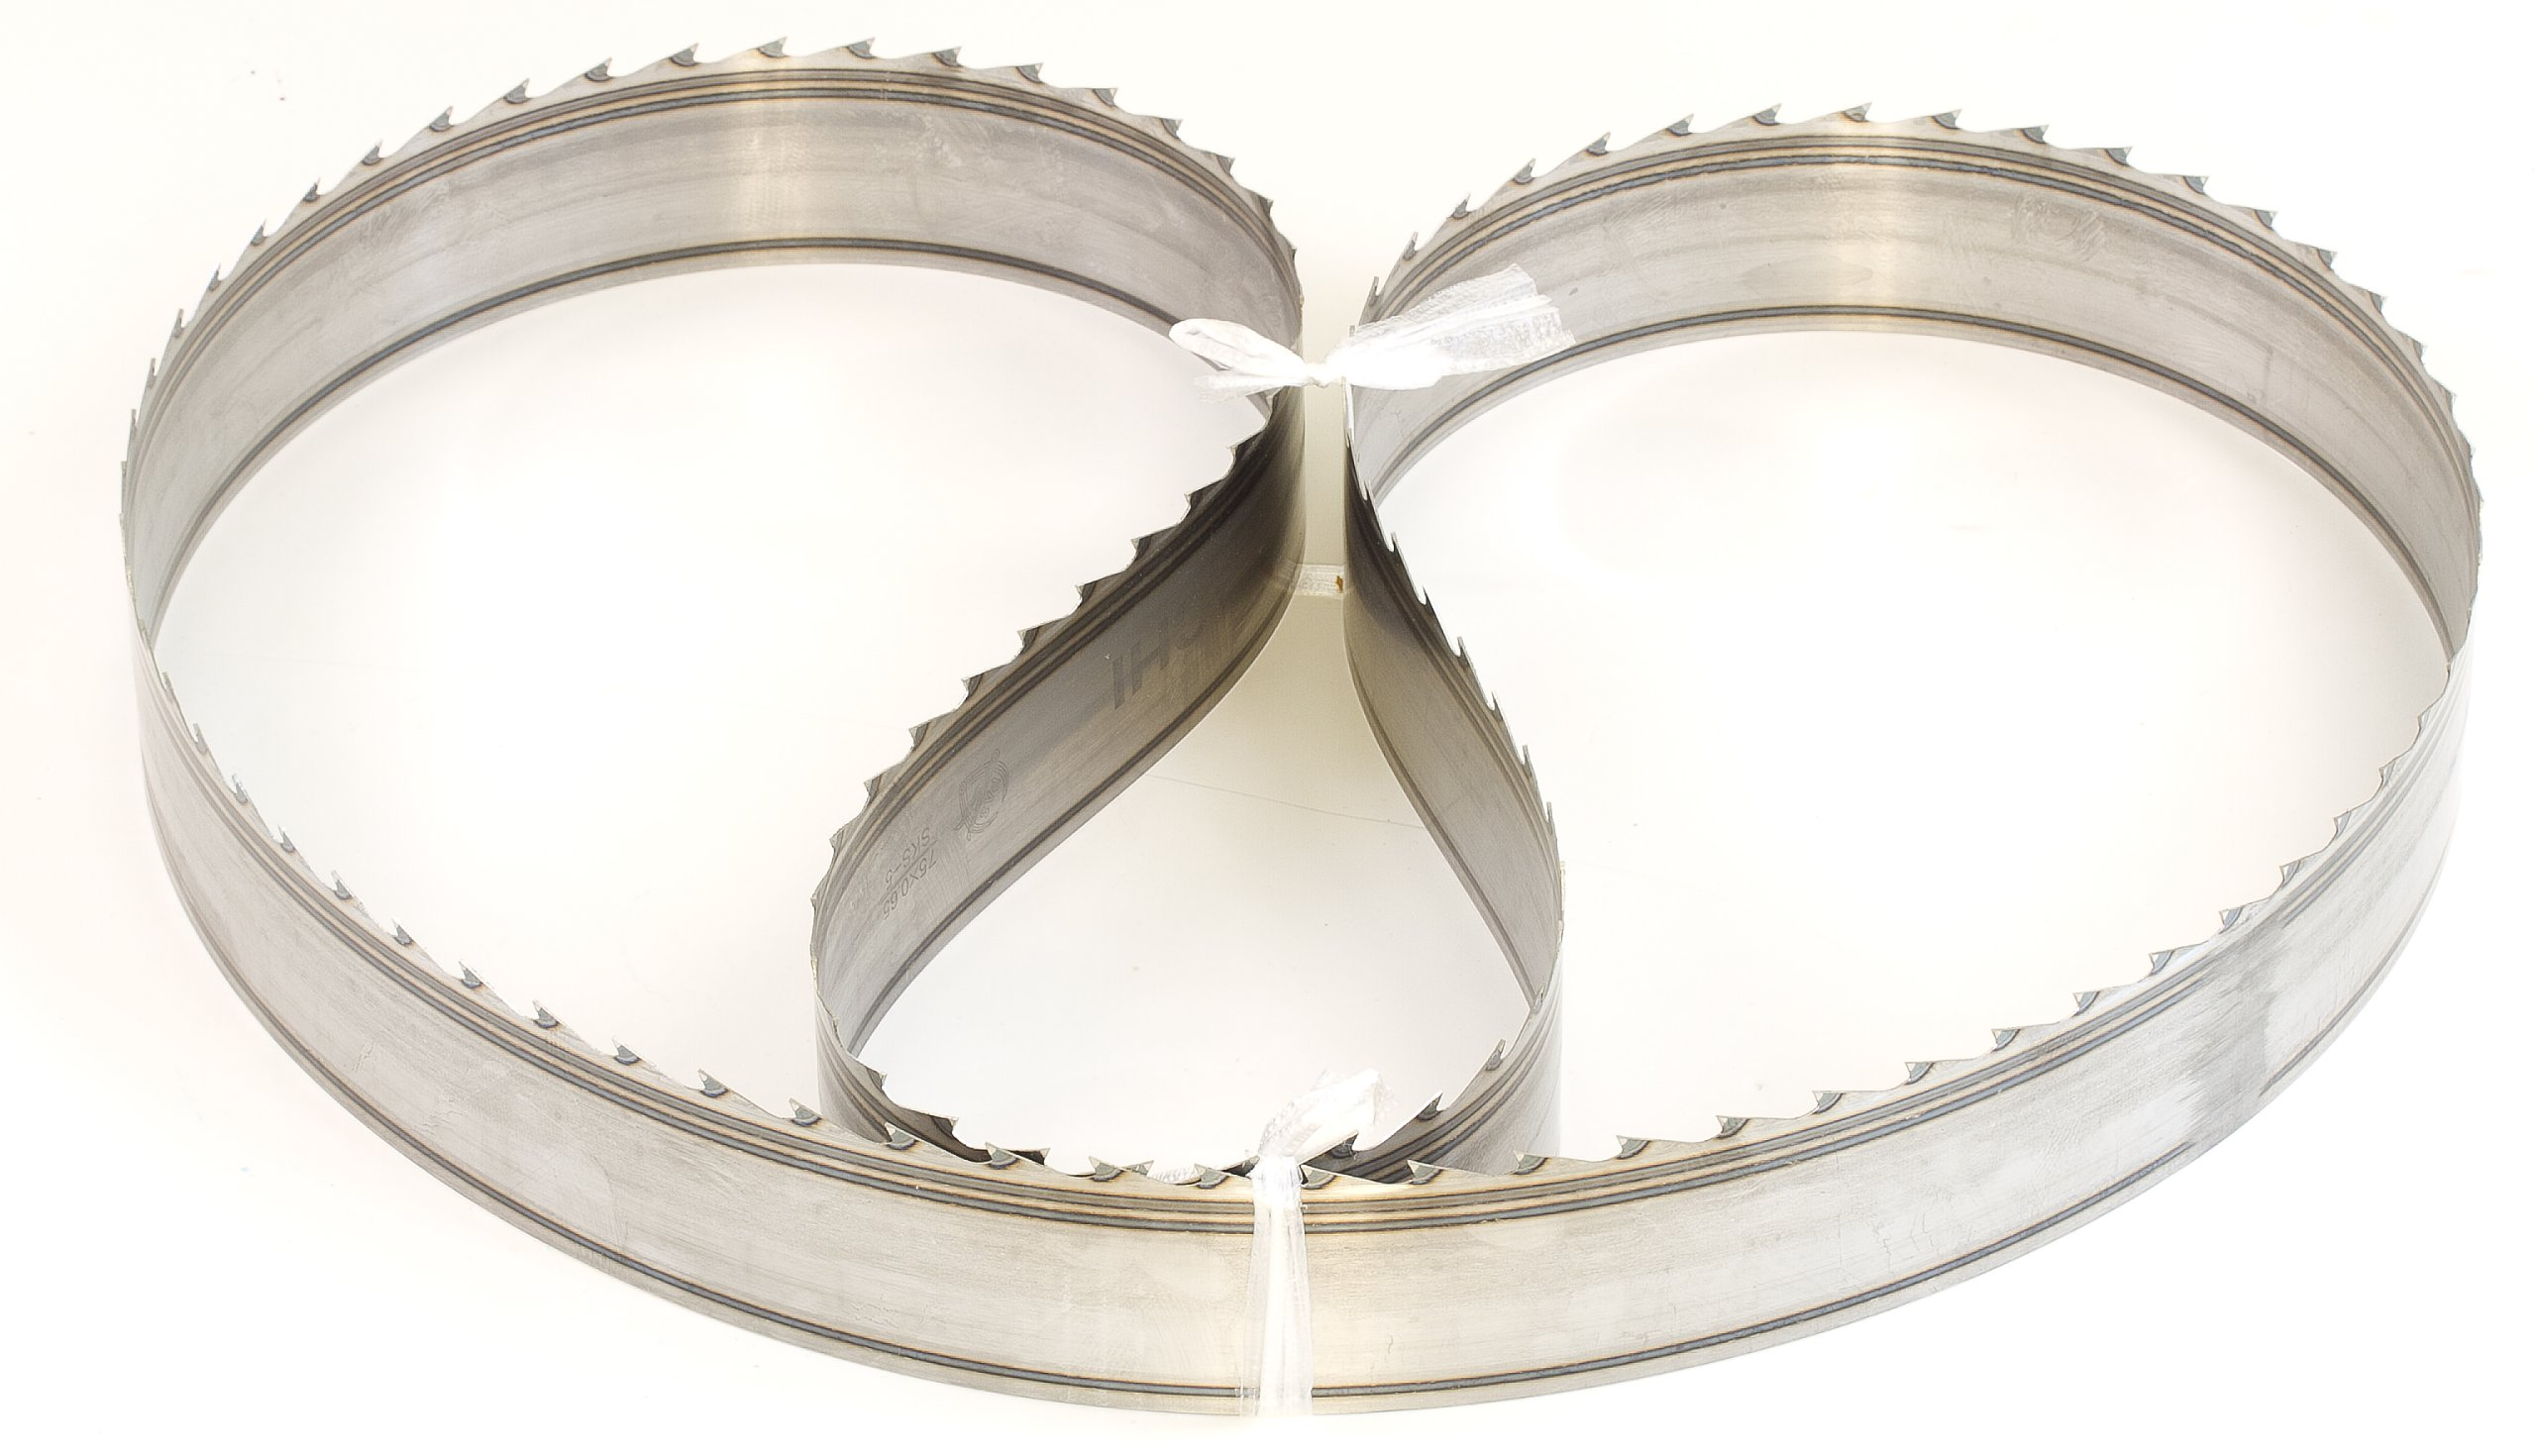 Hitachi 939971 1-Tooth per Inch 3-Inch Hardened Tip Wood Cutting Band Saw Blade by Hitachi